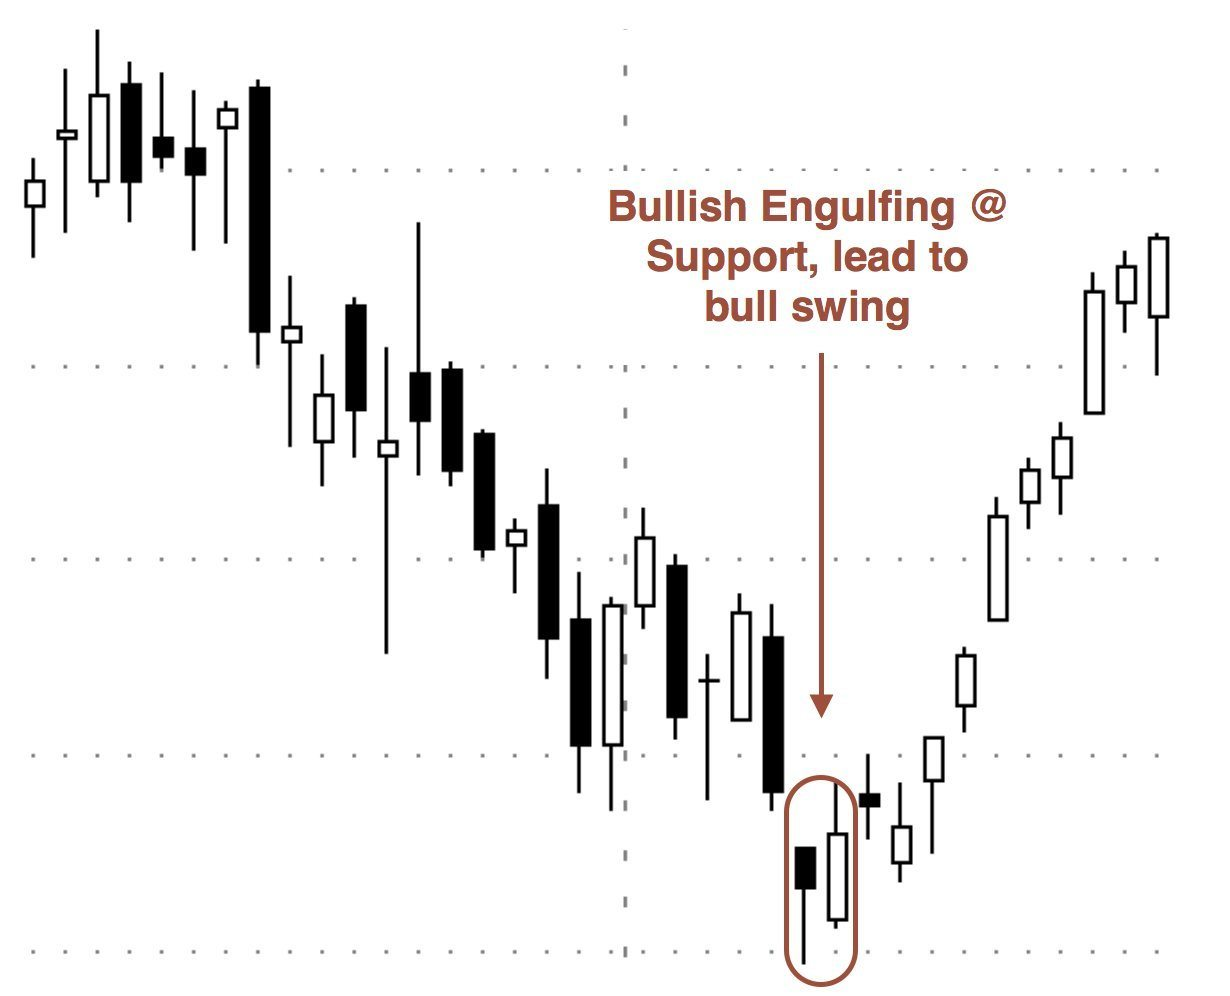 Top 3 Candlestick Patterns for Bull Markets • TradeSmart